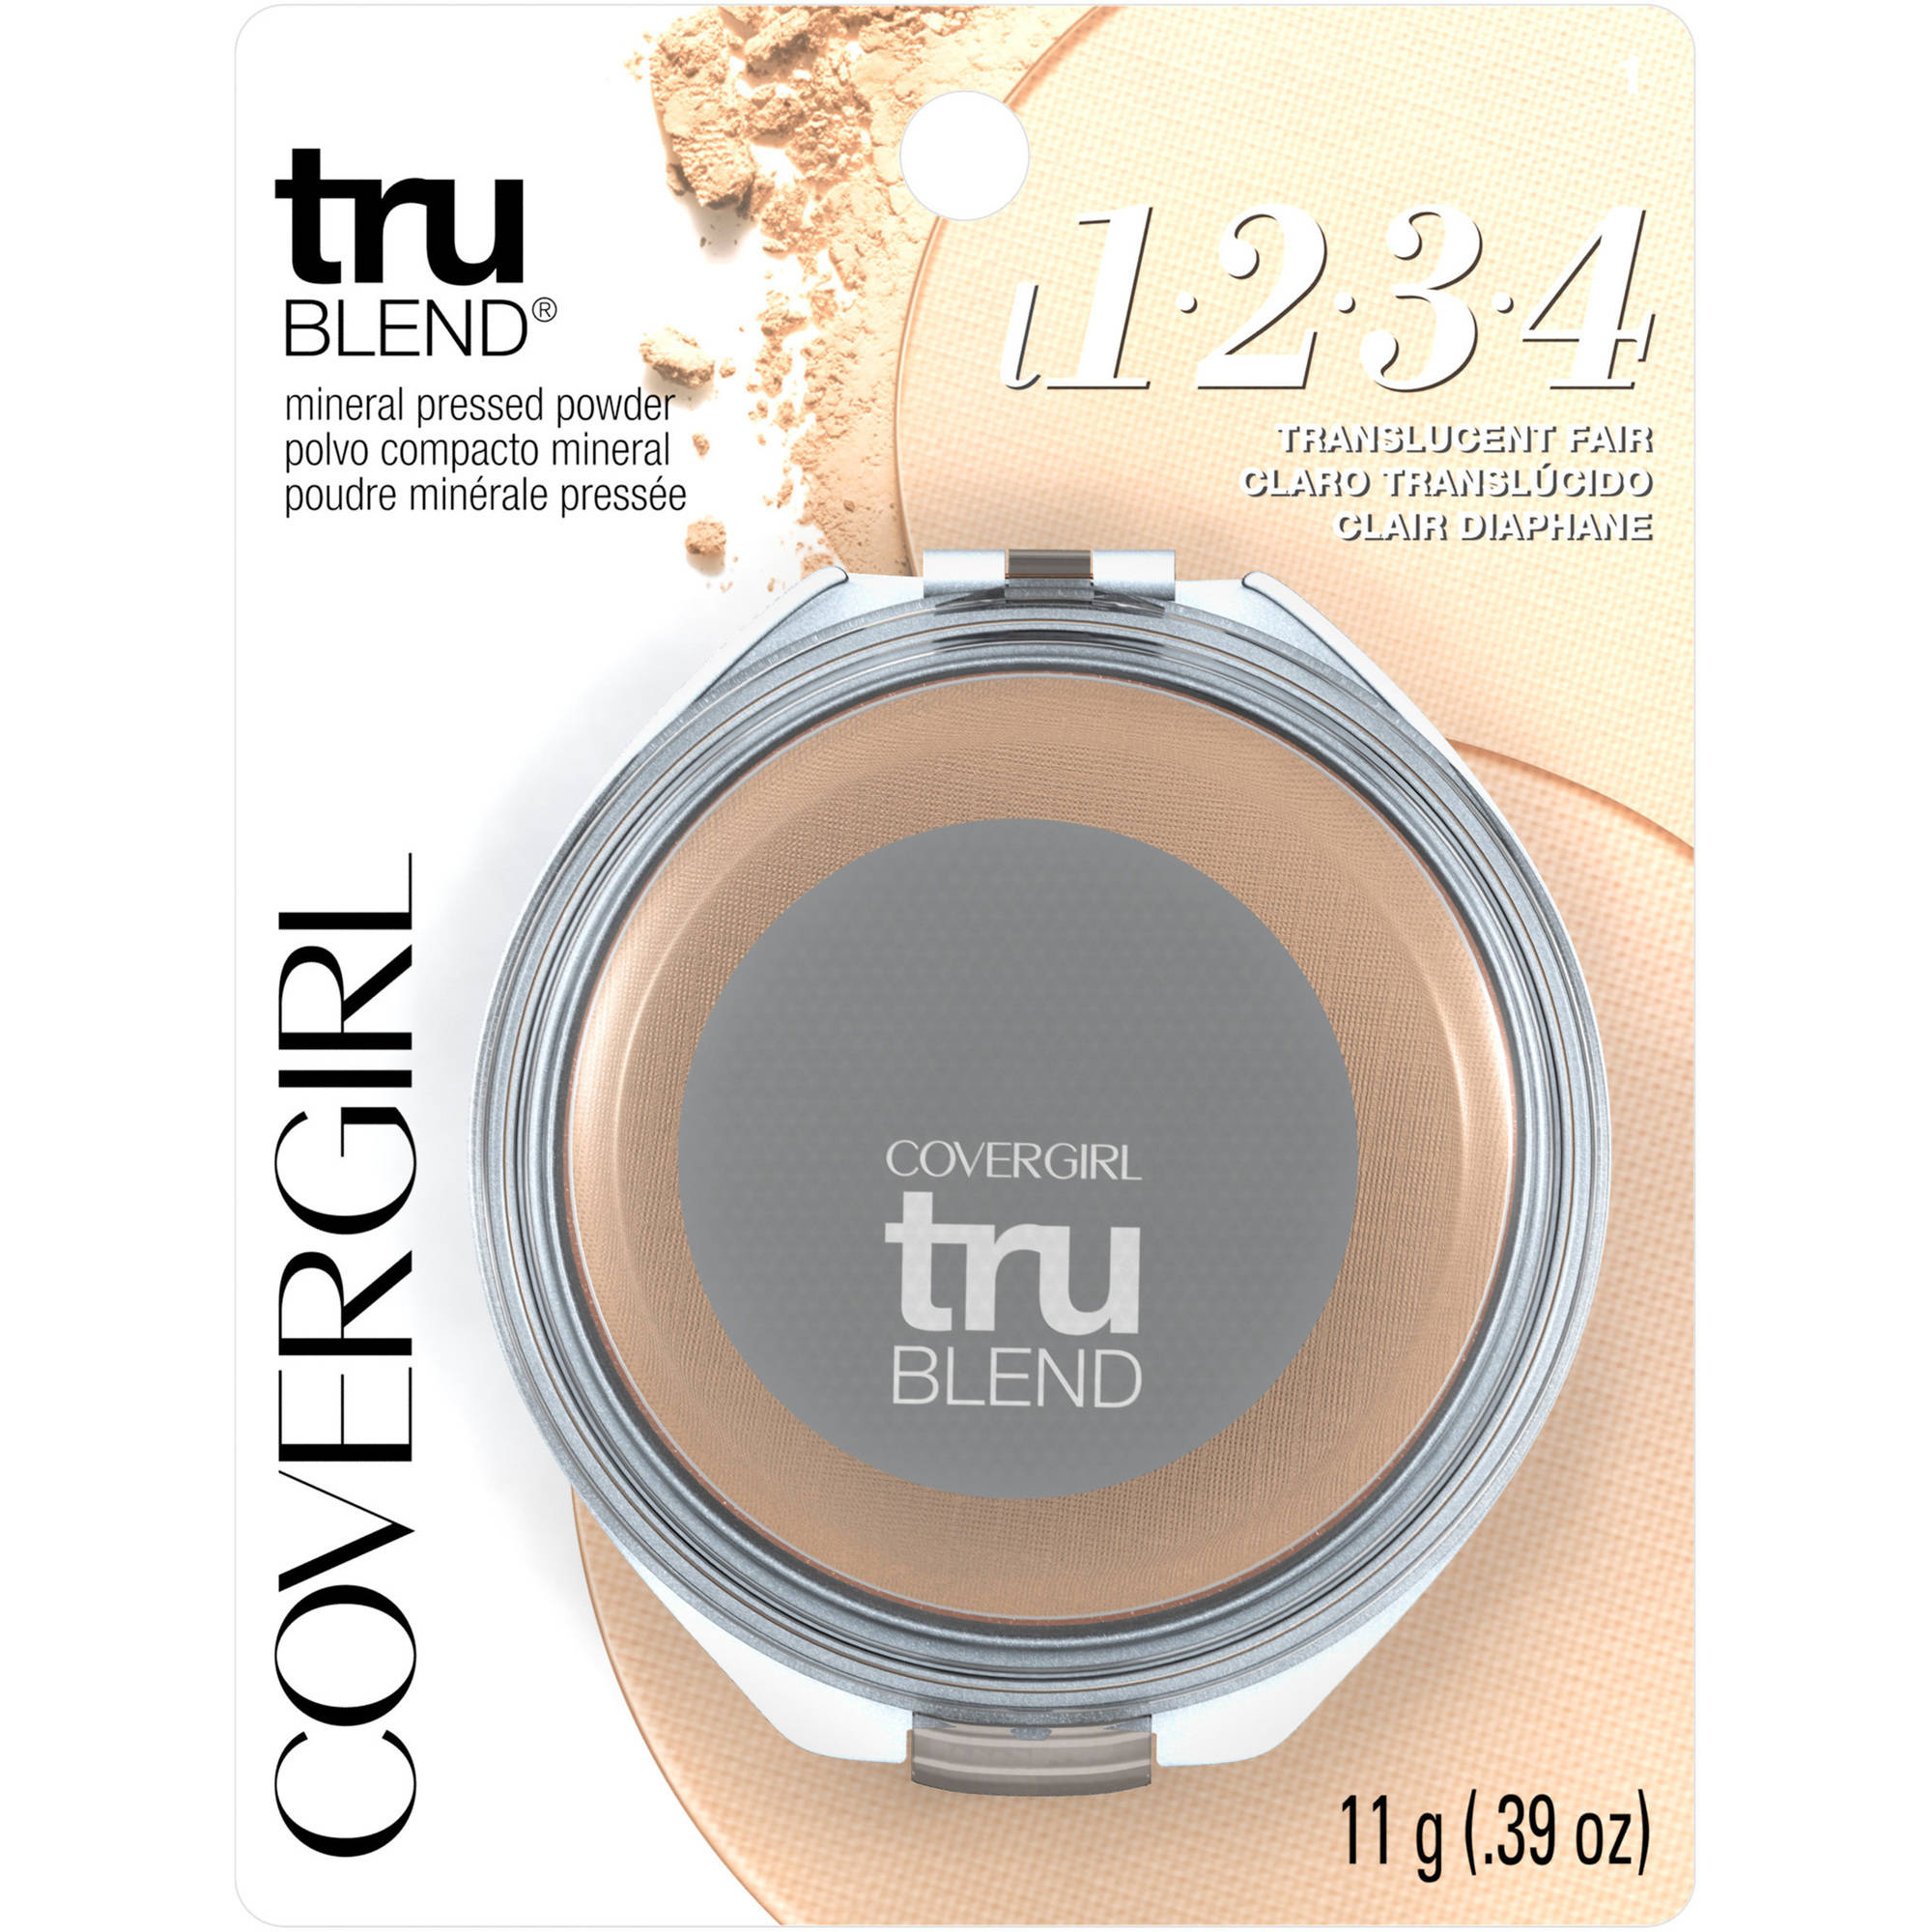 COVERGIRL truBlend Pressed Powder, Translucent Fair, .39 oz